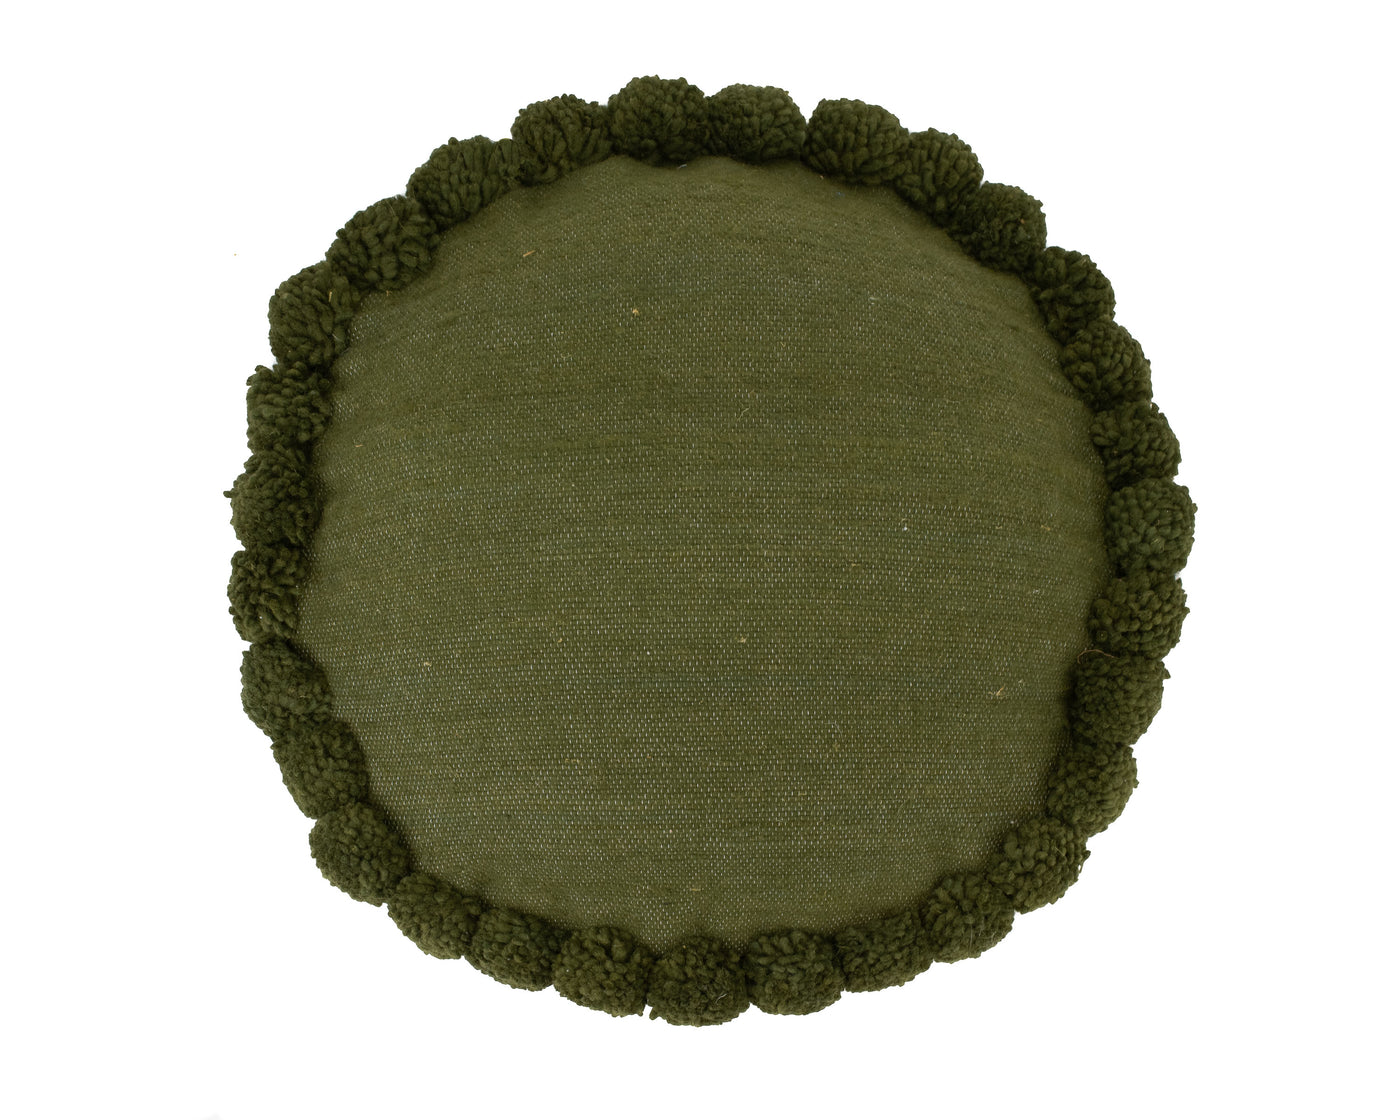 Lina Round Pom Cover - Olive Wool